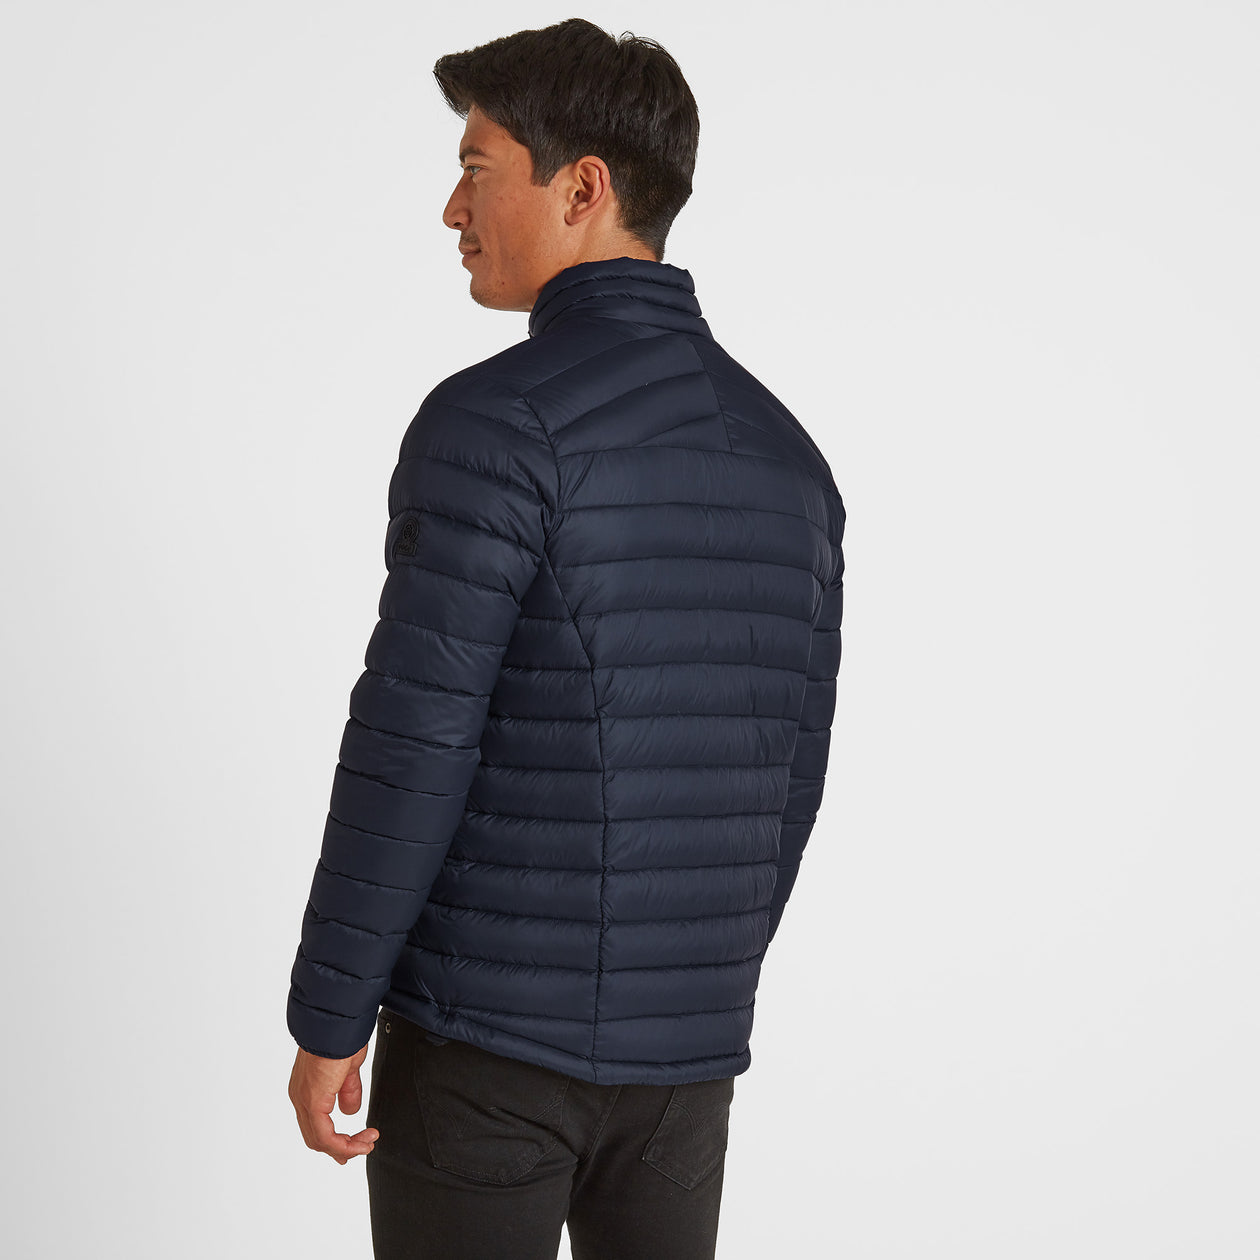 Drax Mens Funnel Down Jacket - Navy image 4